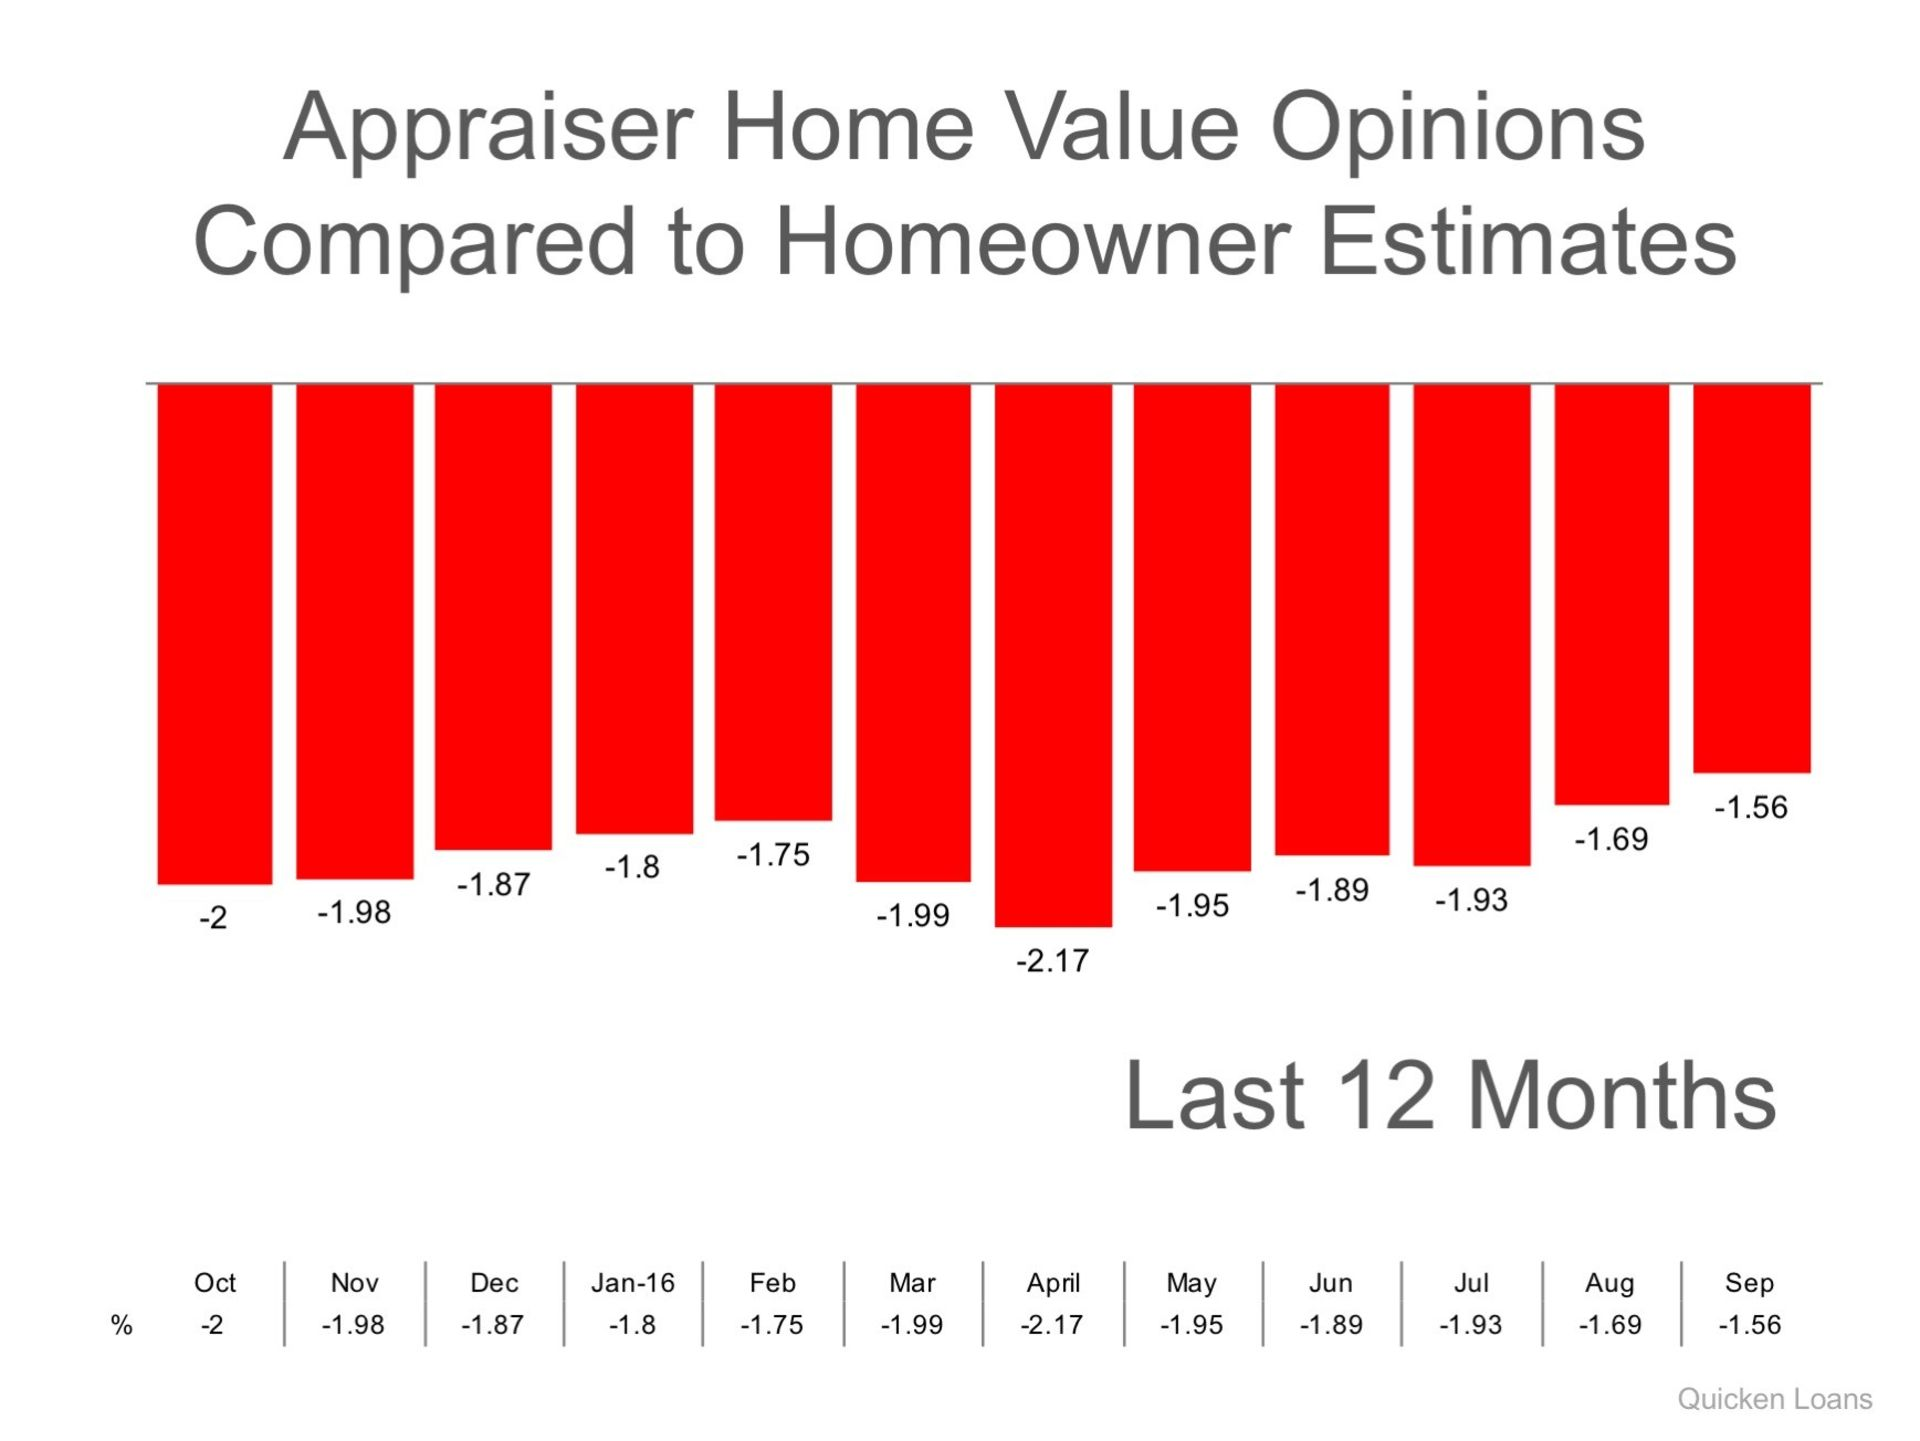 Appraisers & Homeowners Don't See Eye-To-Eye on Values